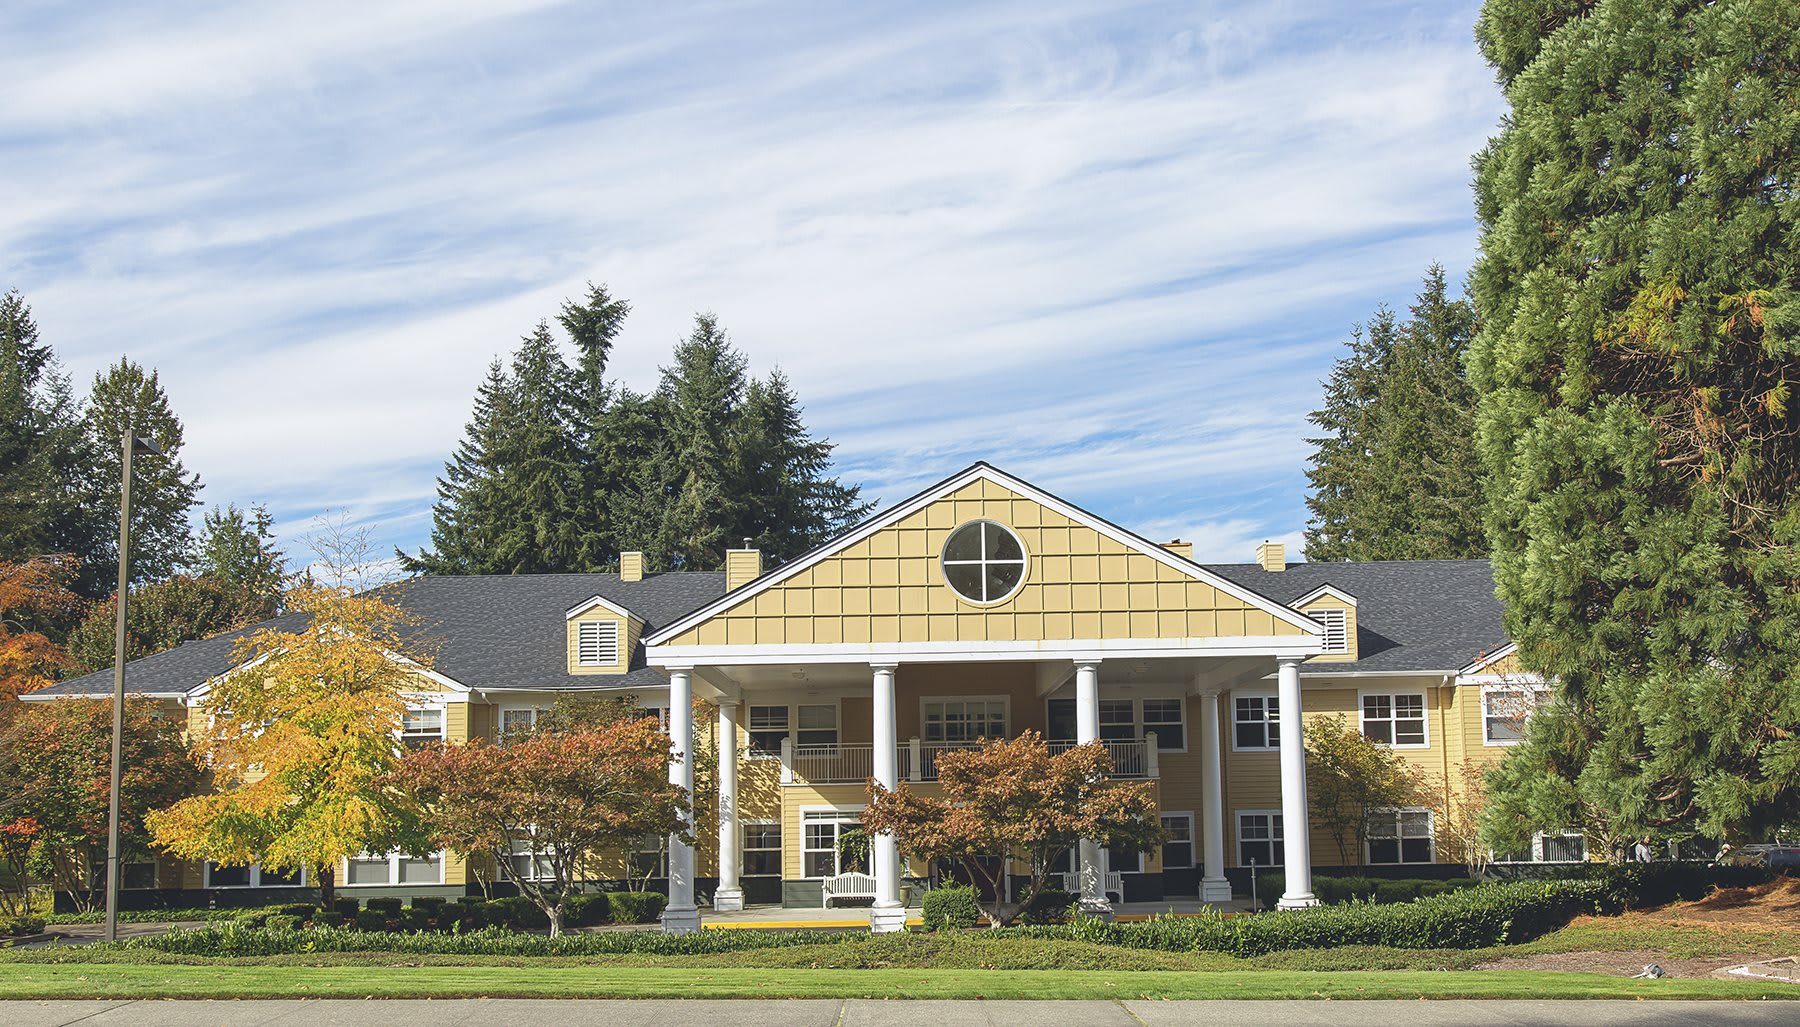 Photo 1 of The Sequoia Assisted Living